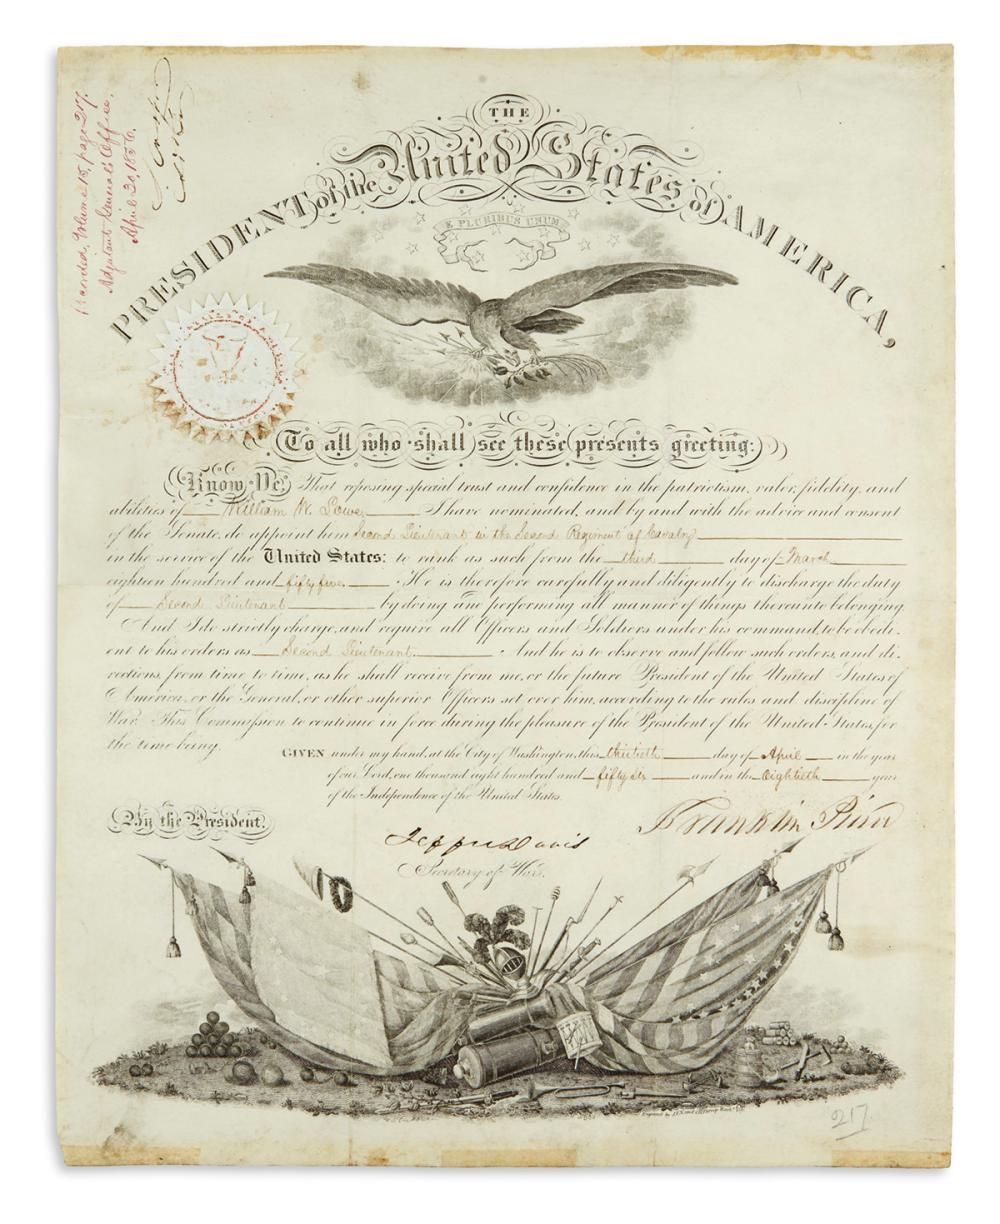 PIERCE, FRANKLIN. Partly-printed vellum Document Signed, as President, military commission appointing William W. Lowe